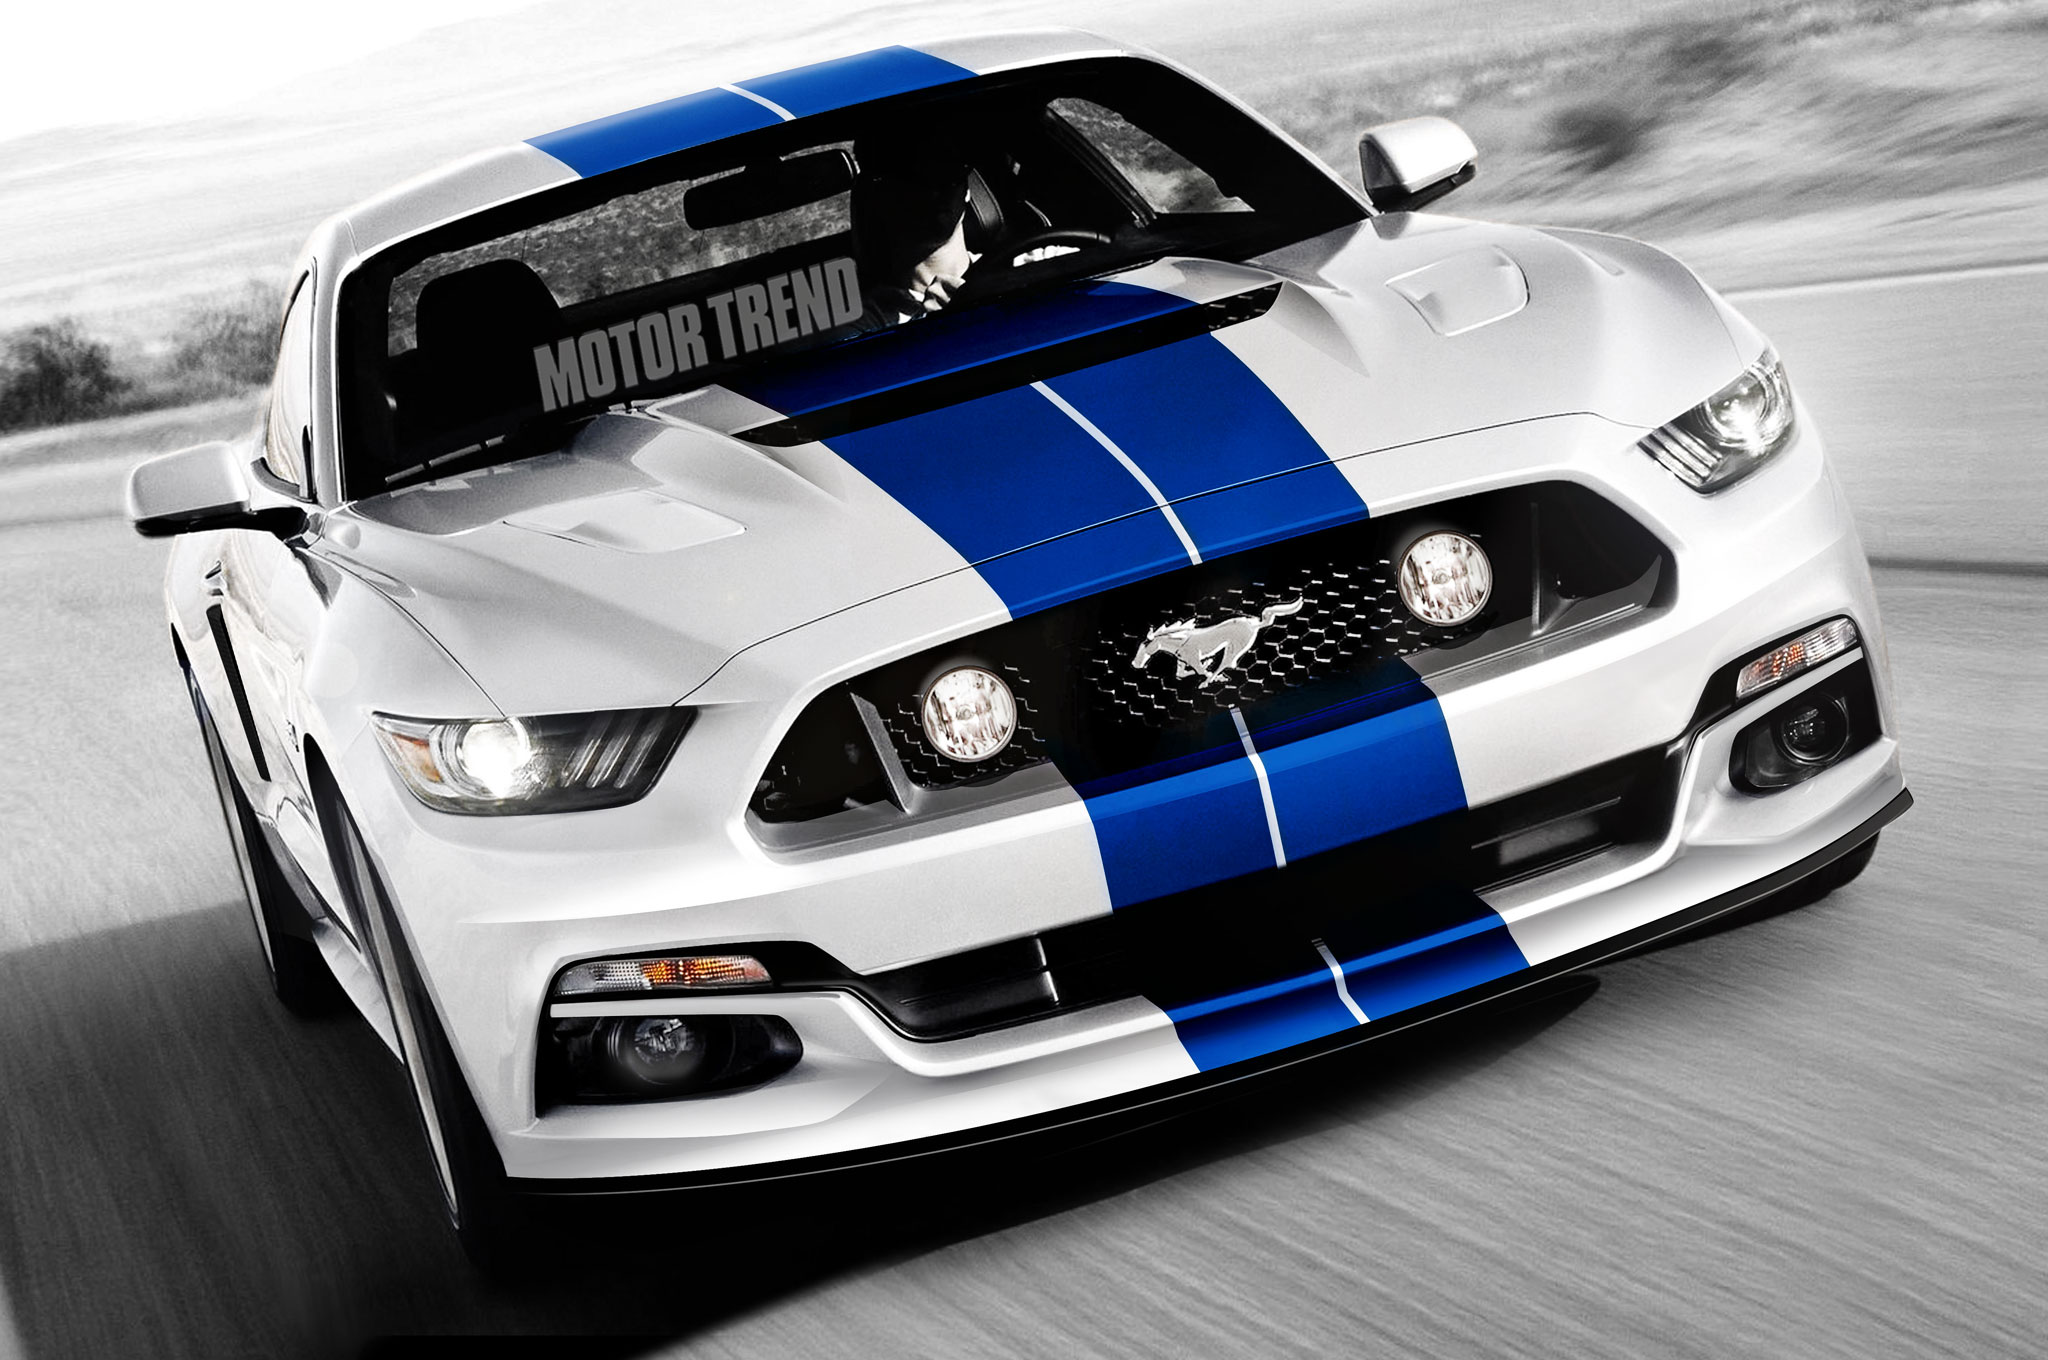 2016 Ford Mustang Shelby GT350 HD Image Wallpaper Image Detail 2048x1360